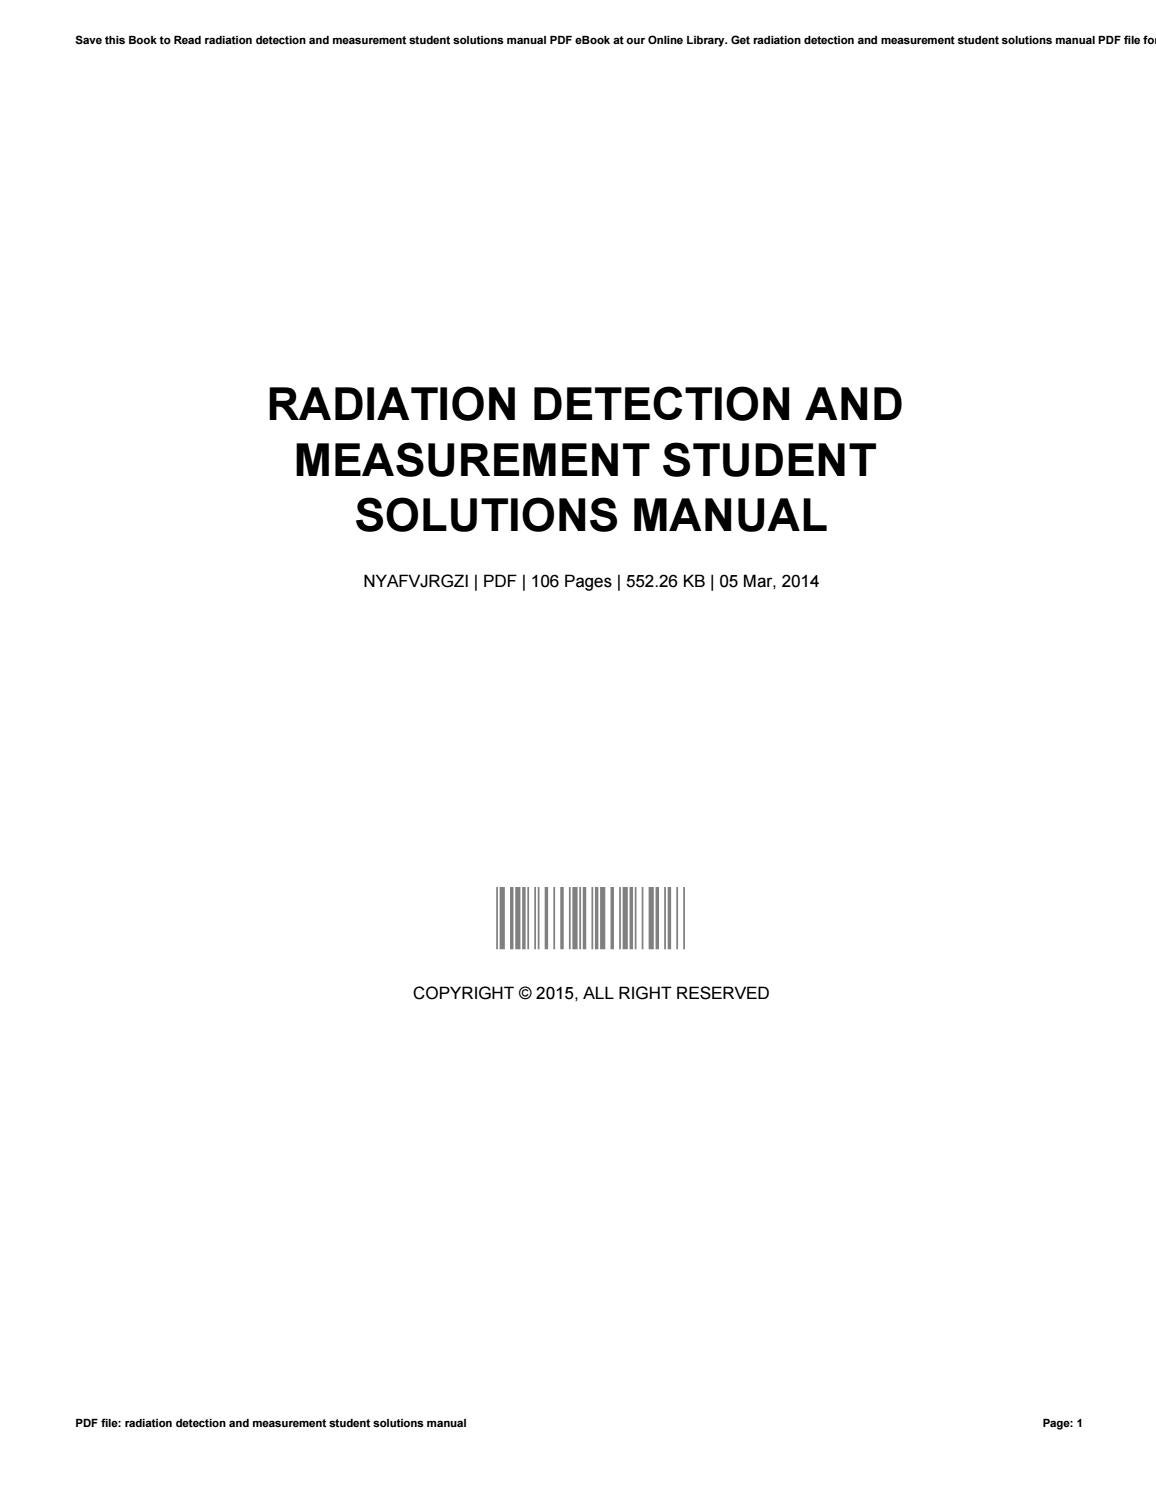 Radiation detection and measurement student solutions manual by  JarrettRobertson4447 - issuu